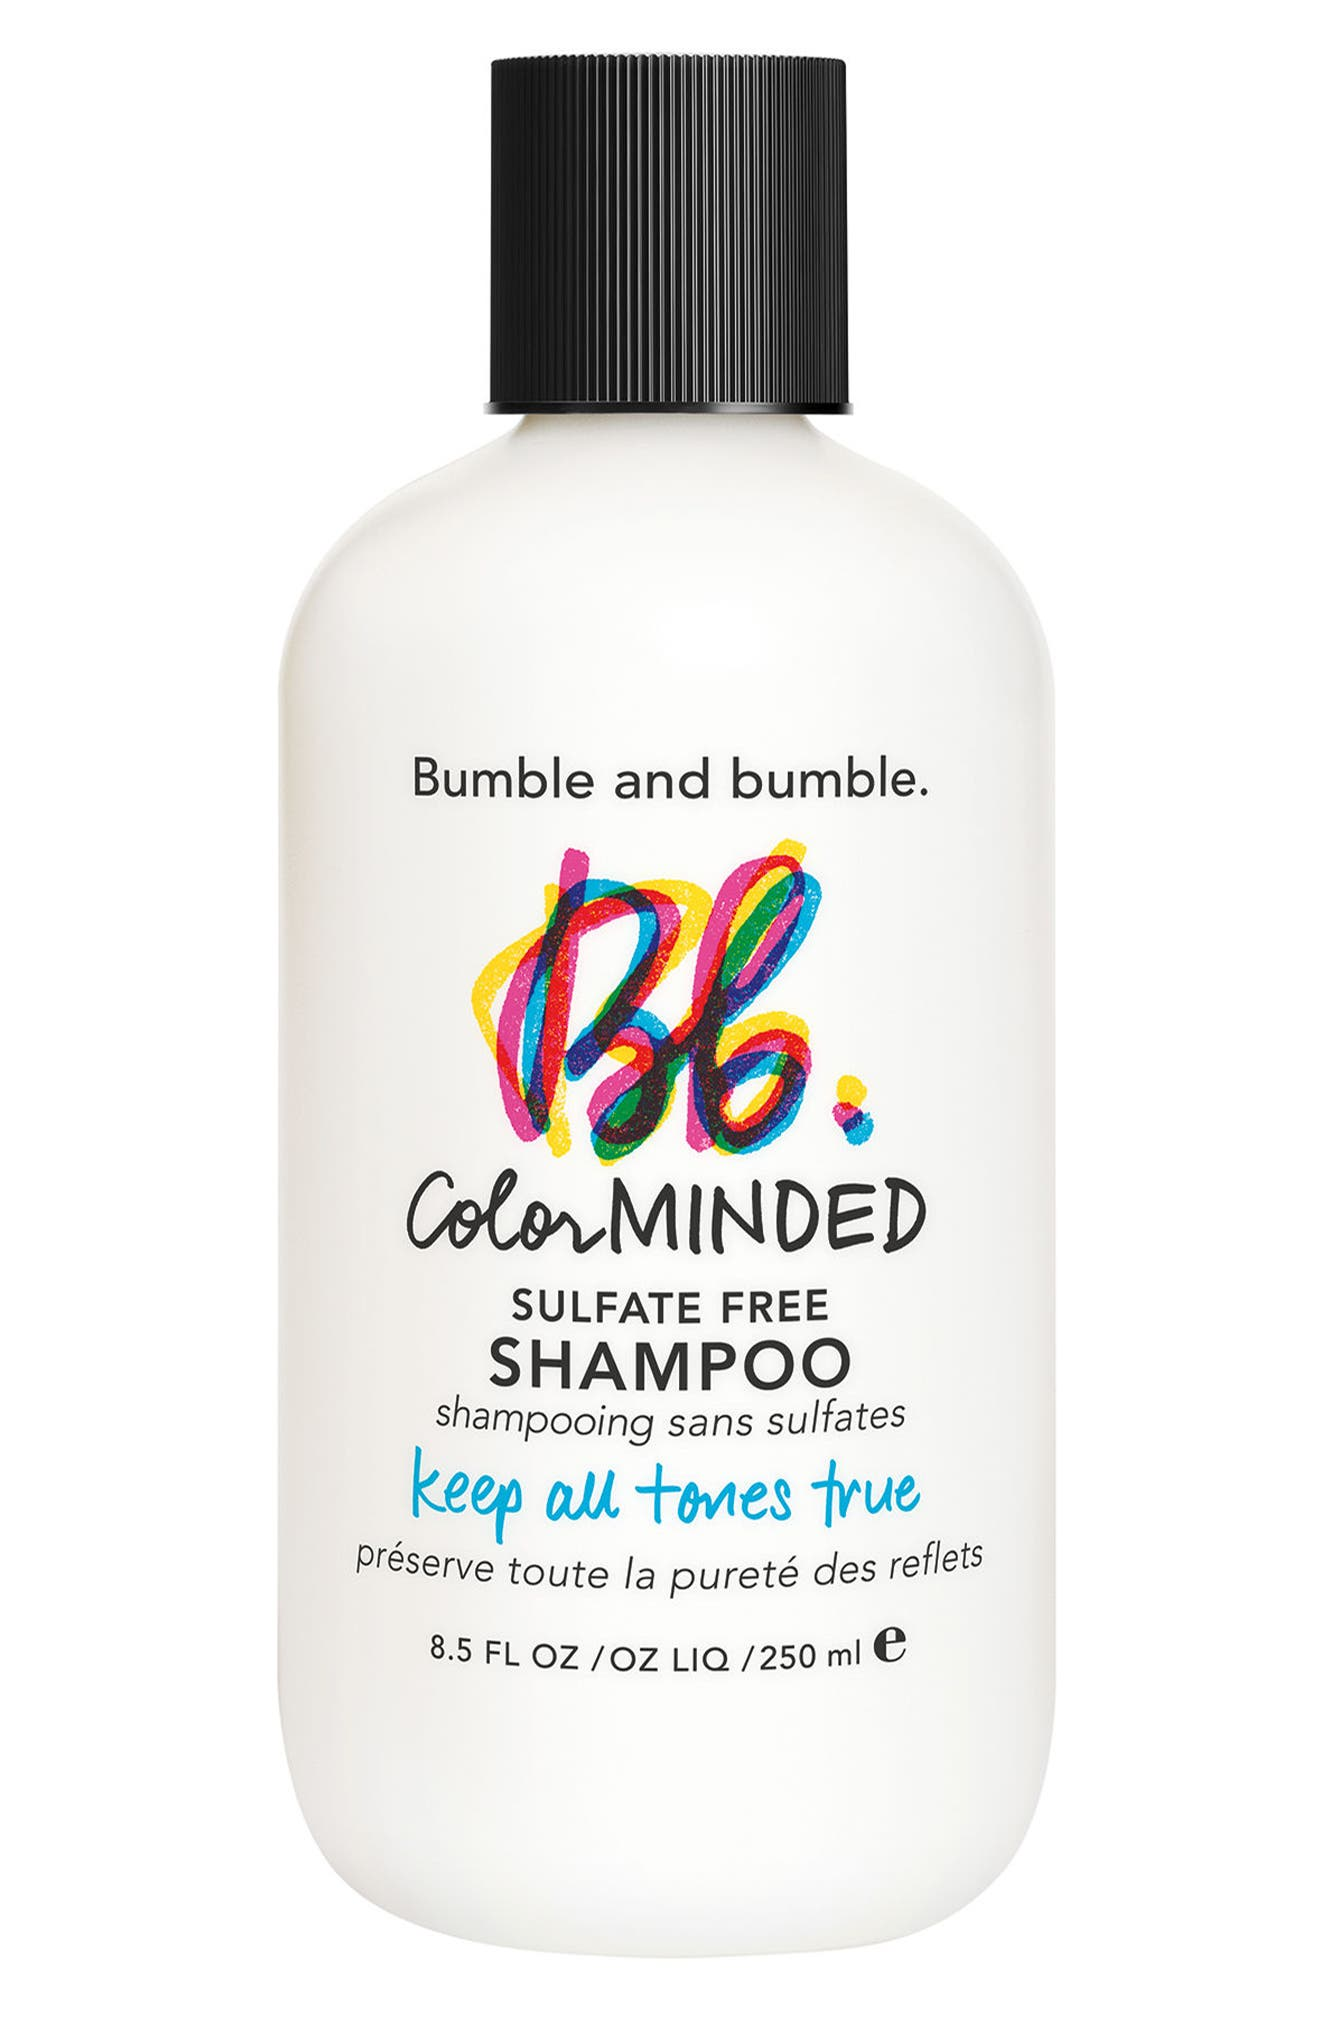 Alternate Image 1 Selected - Bumble and bumble Color Minded Shampoo